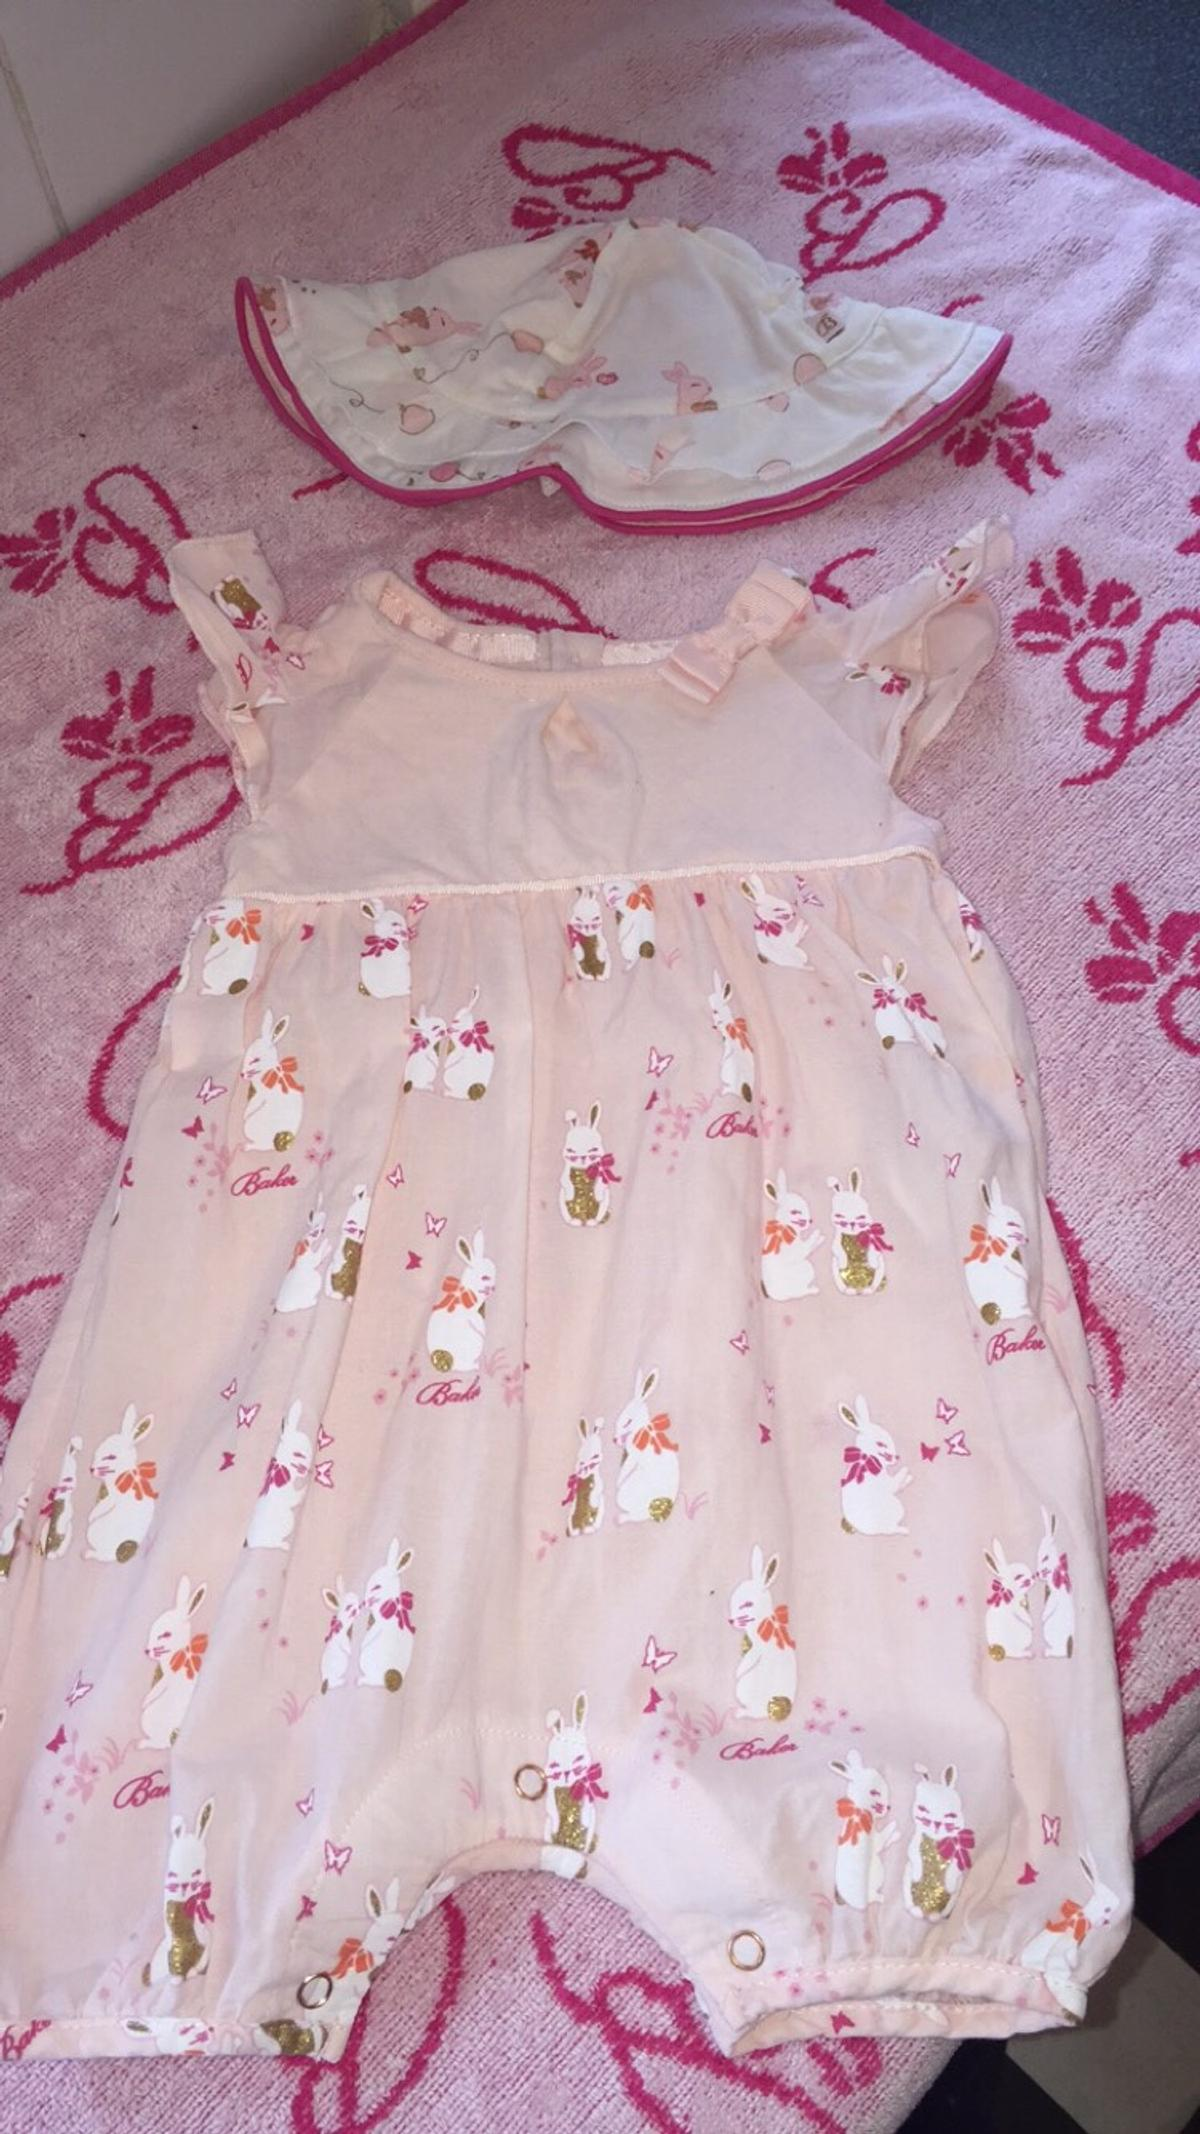 9e5b42a97 Ted baker bunny romper with sun hat in BL2 Bolton for £7.00 for sale ...